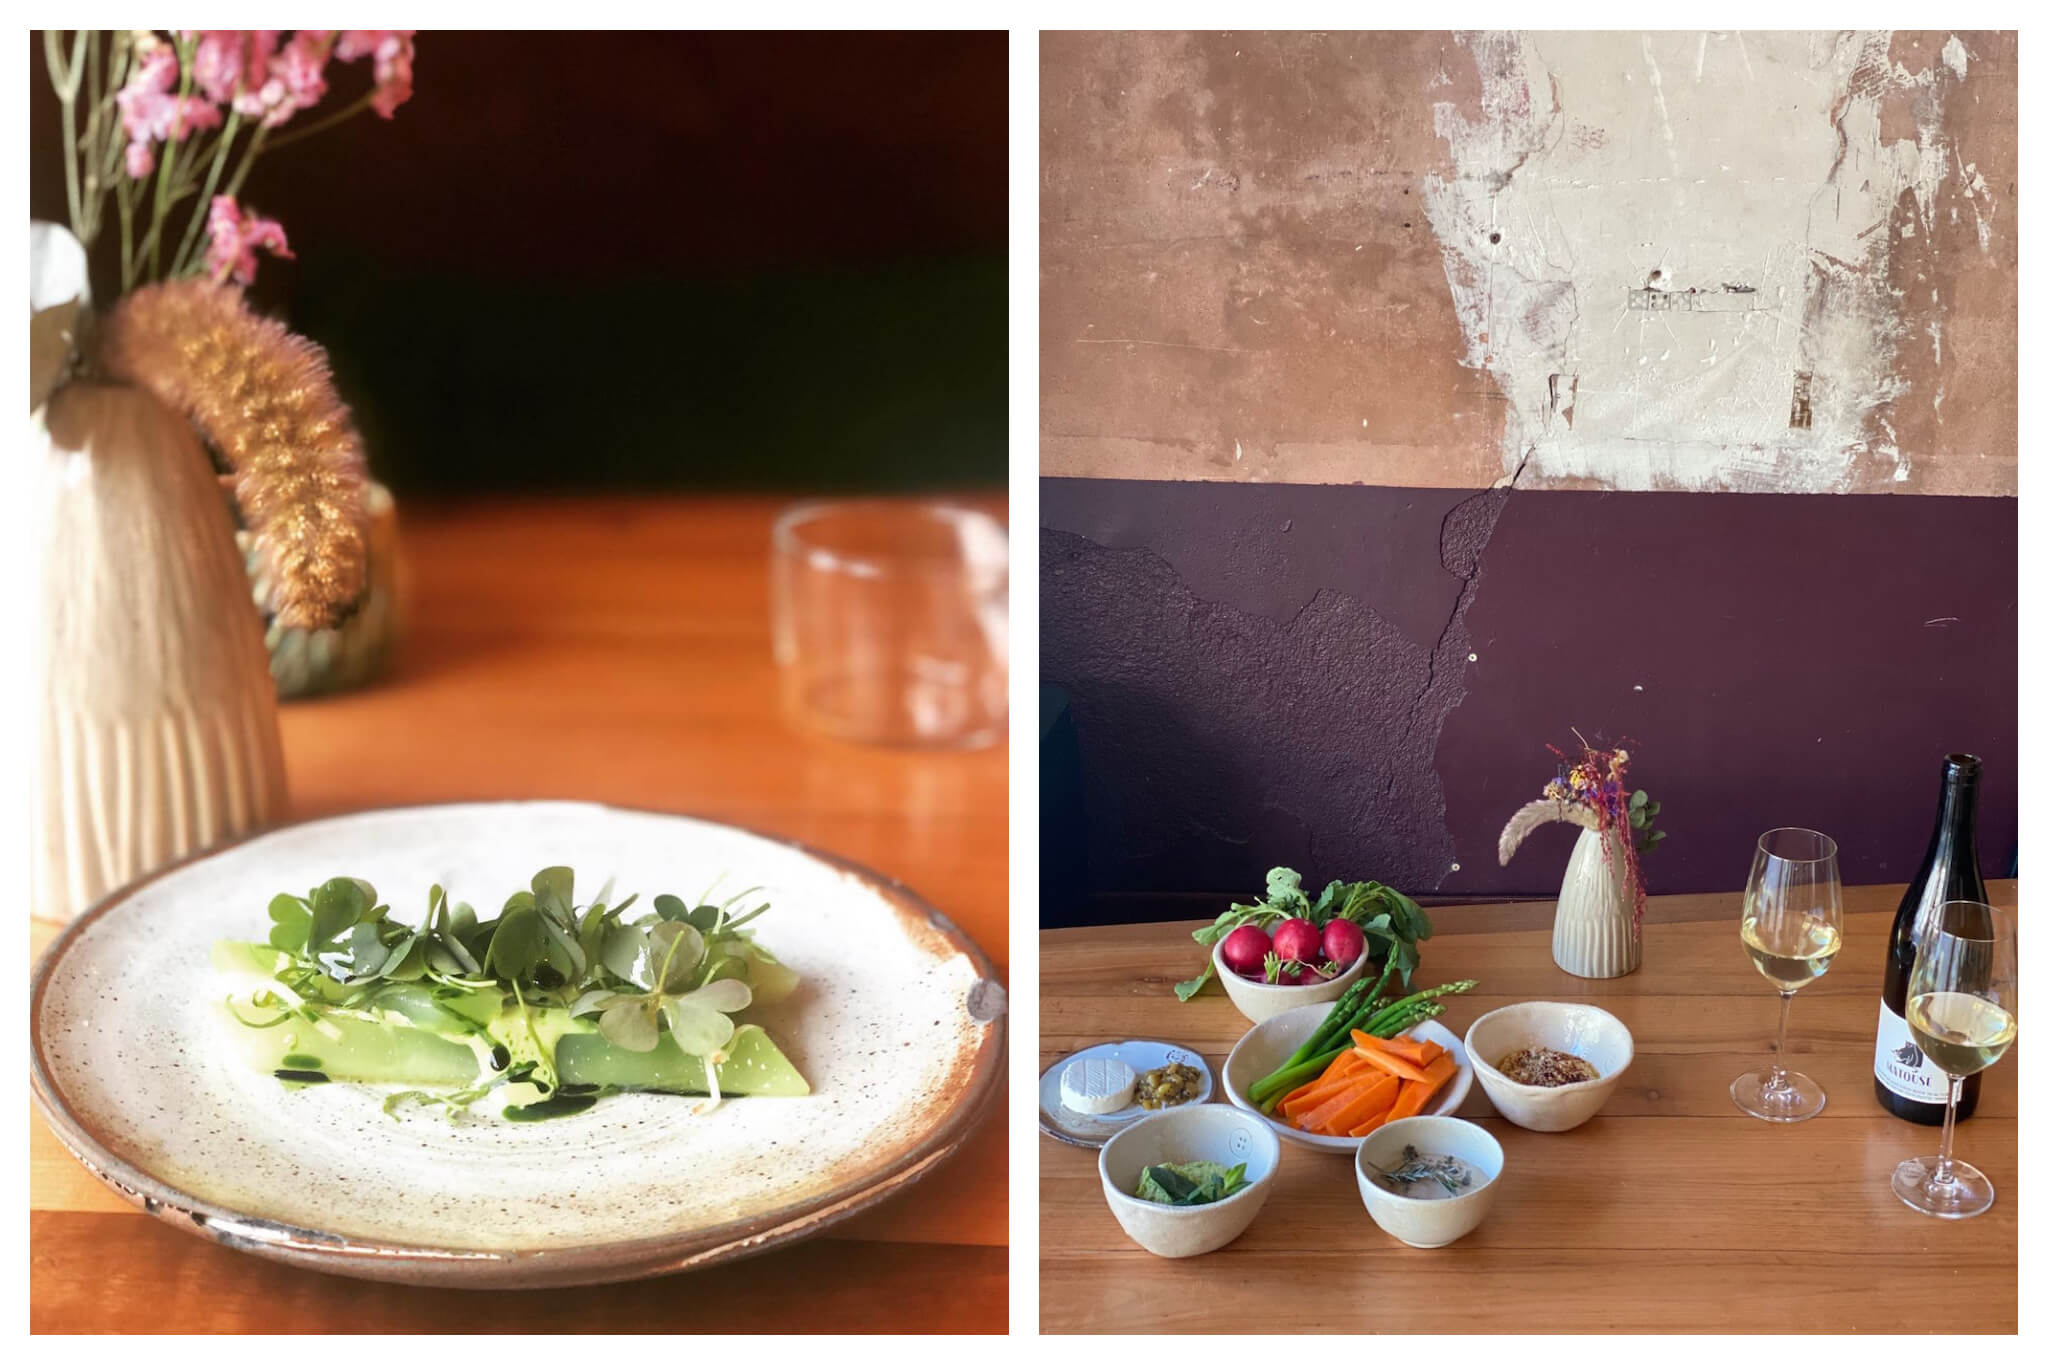 Left: a meal of artfully plated green vegetables. Right: small bowls of crudites including radishes, carrots, as well as cheese and nuts, all next to a small vase of flowers and a bottle + two glasses of white wine.